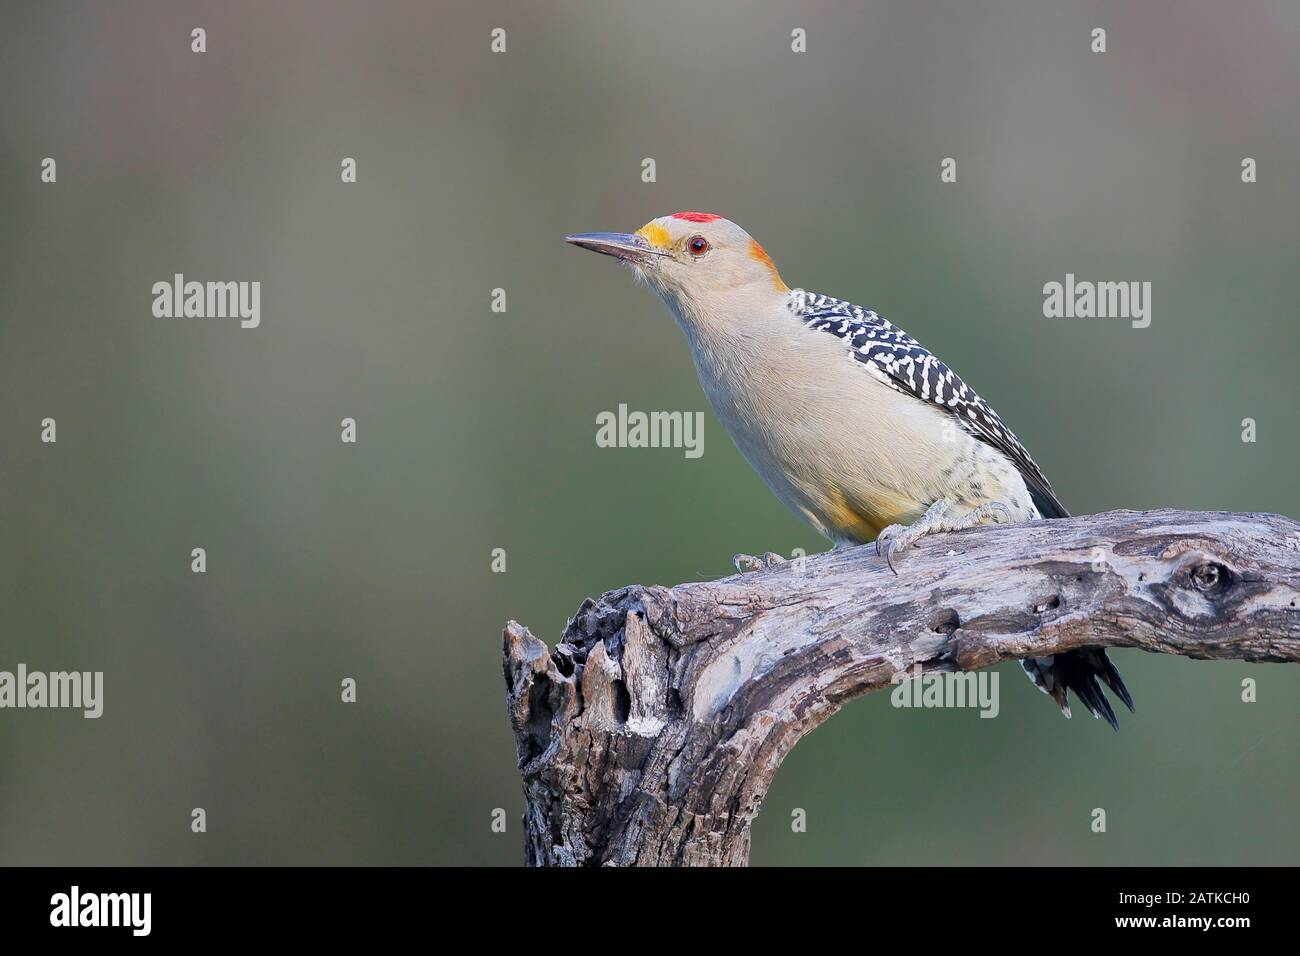 Golden-fronted Woodpecker (Melanerpes aurifrons) on tree in South Texas, USA Stock Photo